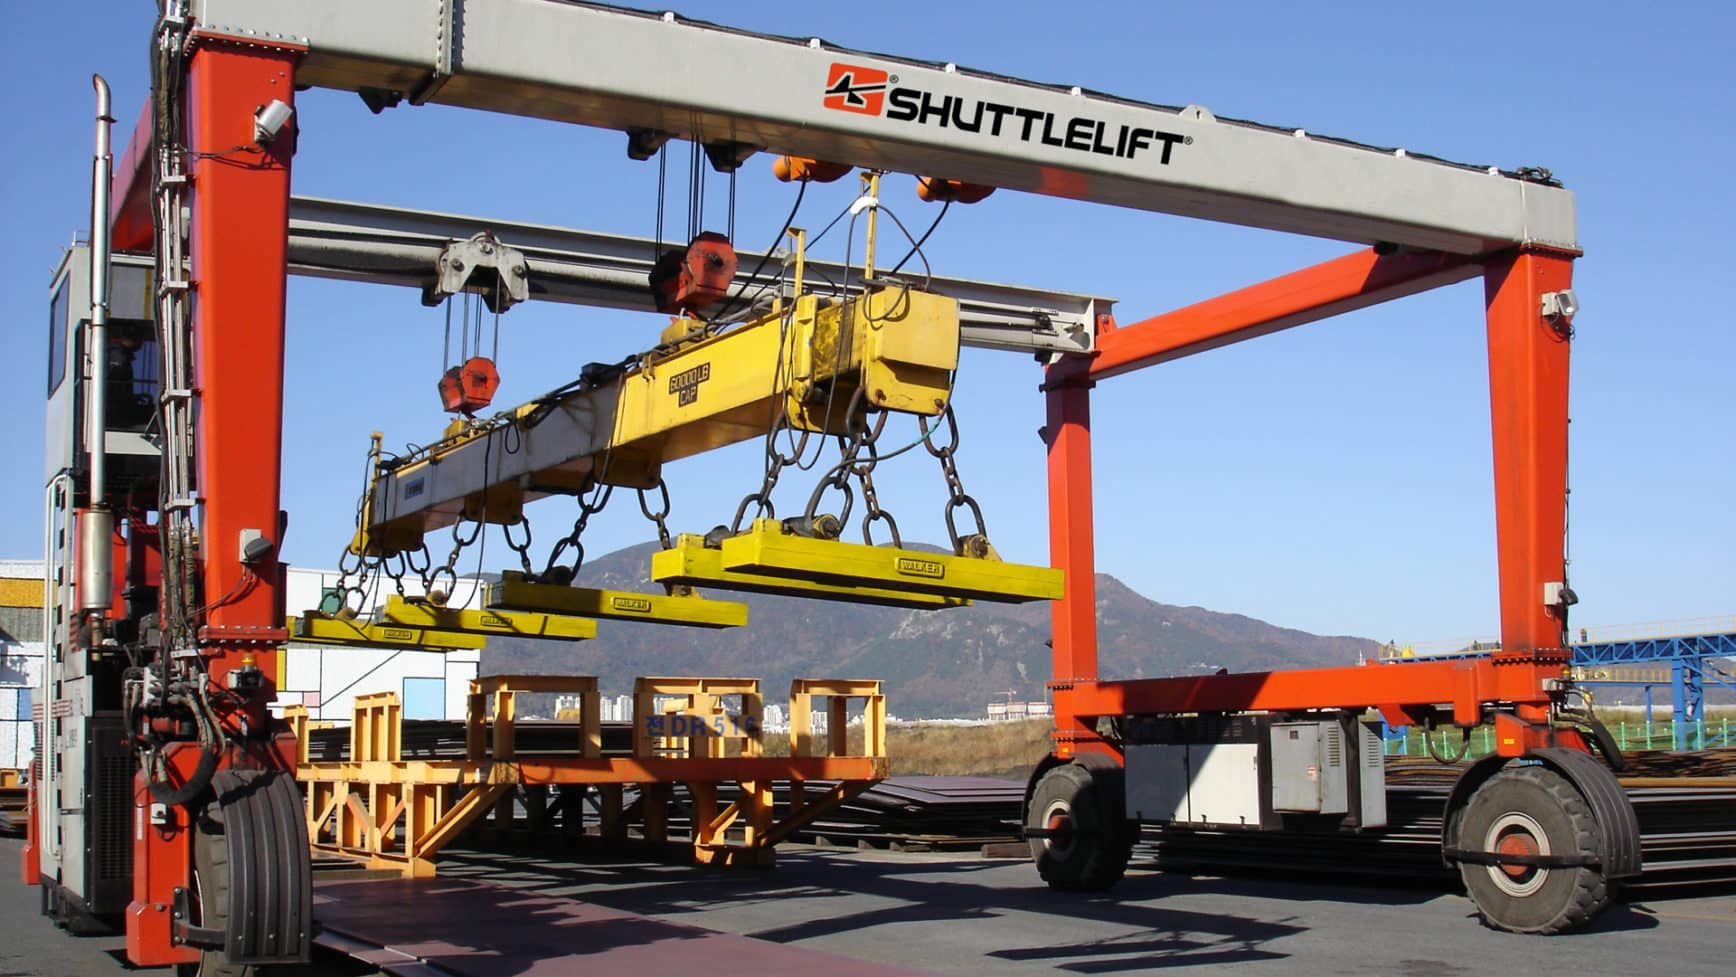 Rubber Tire Gantry Cranes Isl Series Shuttlelift Crane Shut Off Wiring Diagram The That Lift Your Productivity